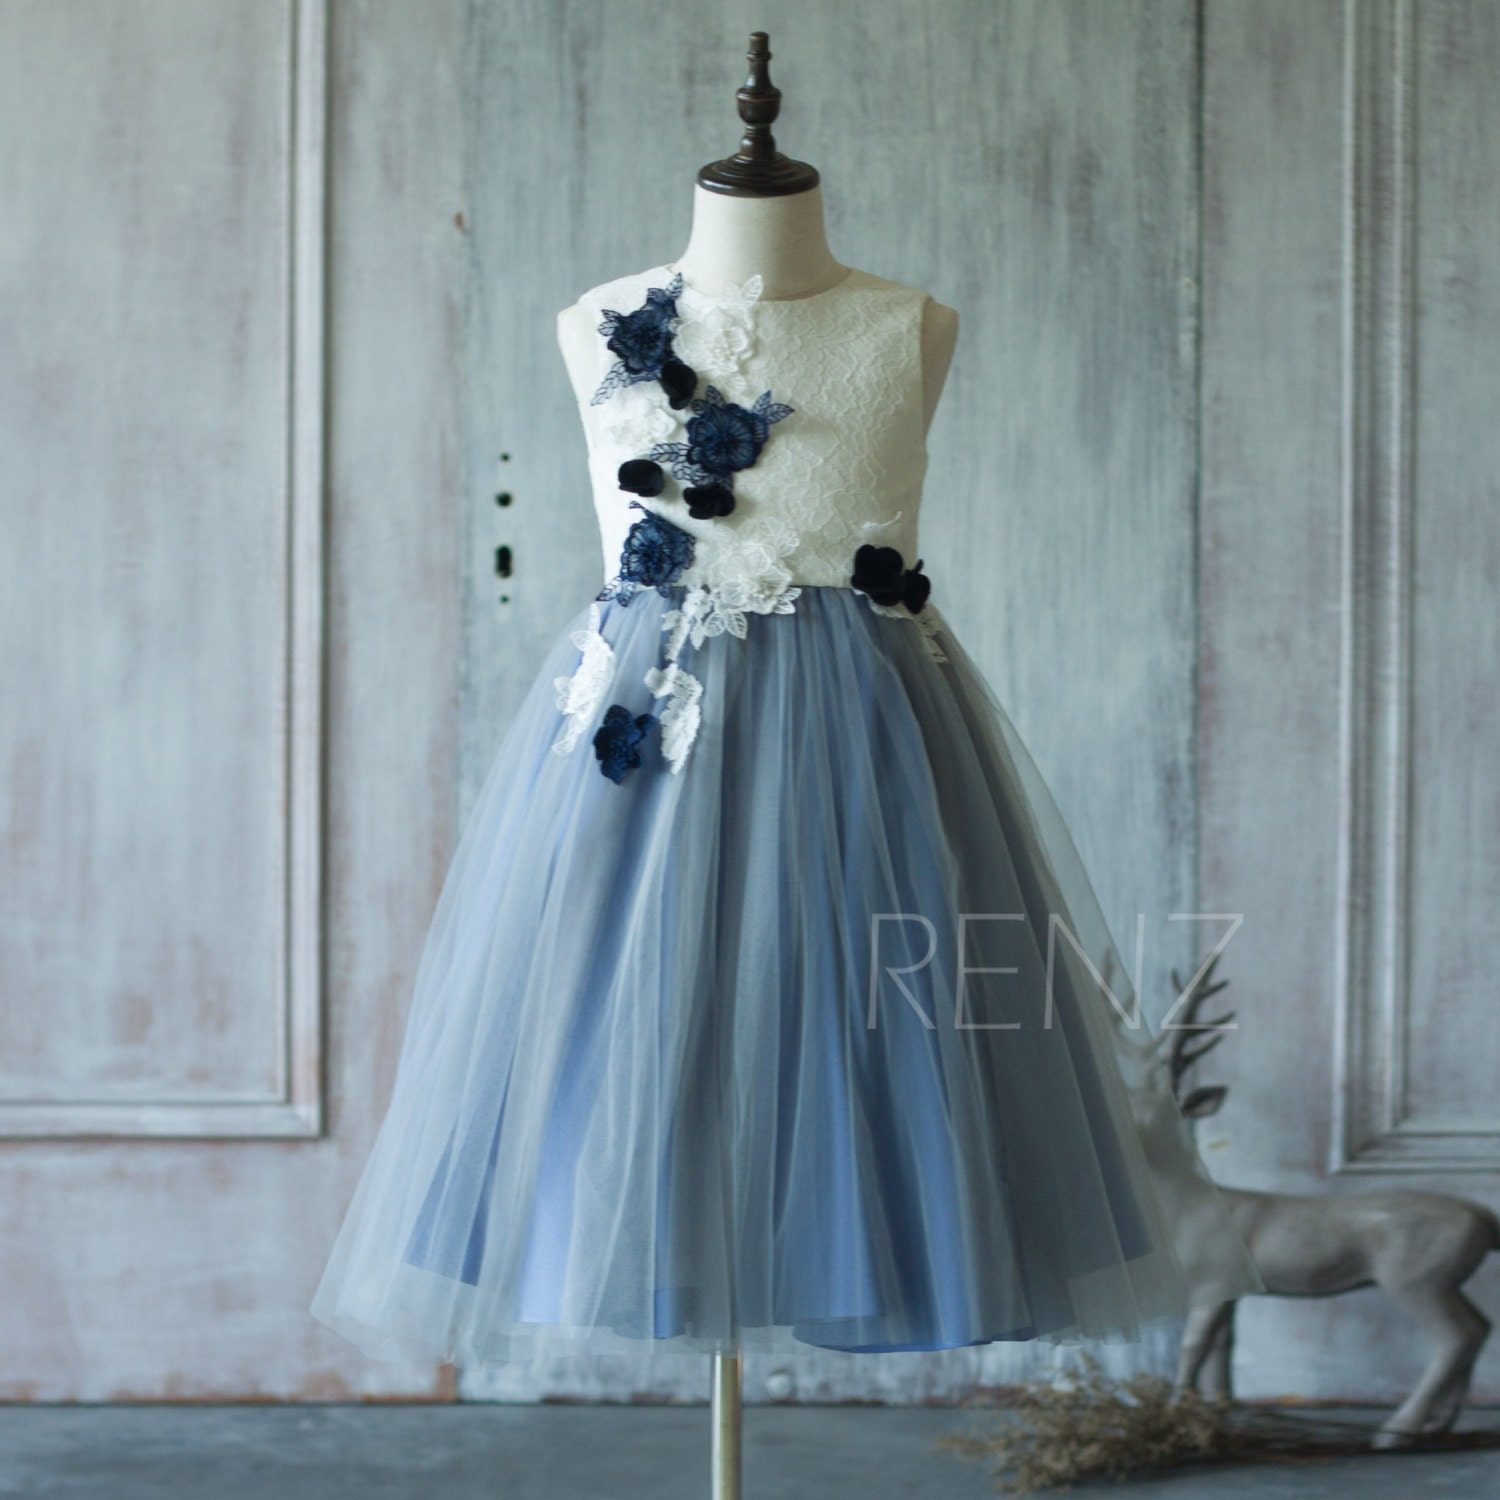 c71e89d13ece7 Flower Girl Dress Steel Blue Tulle Junior Bridesmaid Dress Birthday Lace  Rustic Girl Dress White First Communion Dress (SK178)